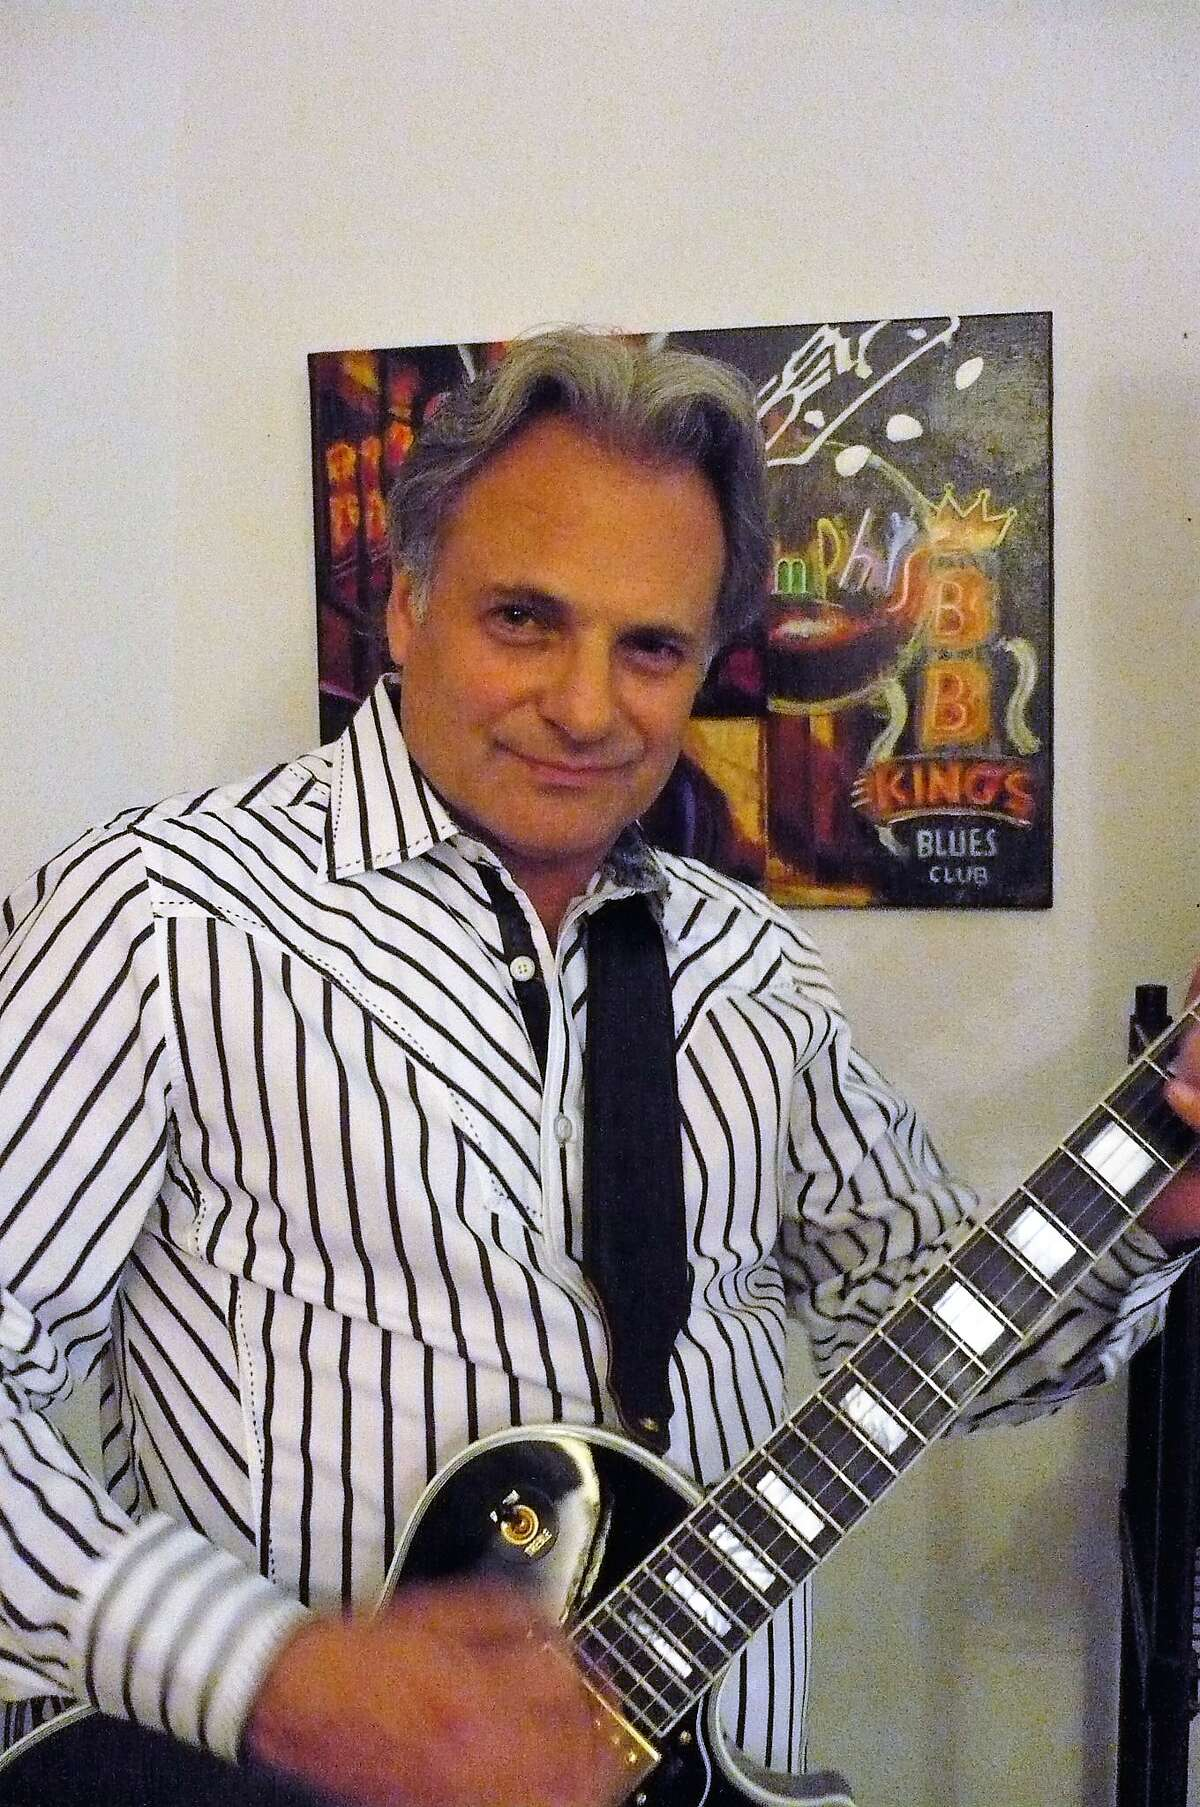 Guitarist Brian Rutledge will perform Aug. 26 as part of the Music on the Patio series at Cross Creek Ranch's Italian Maid Café.